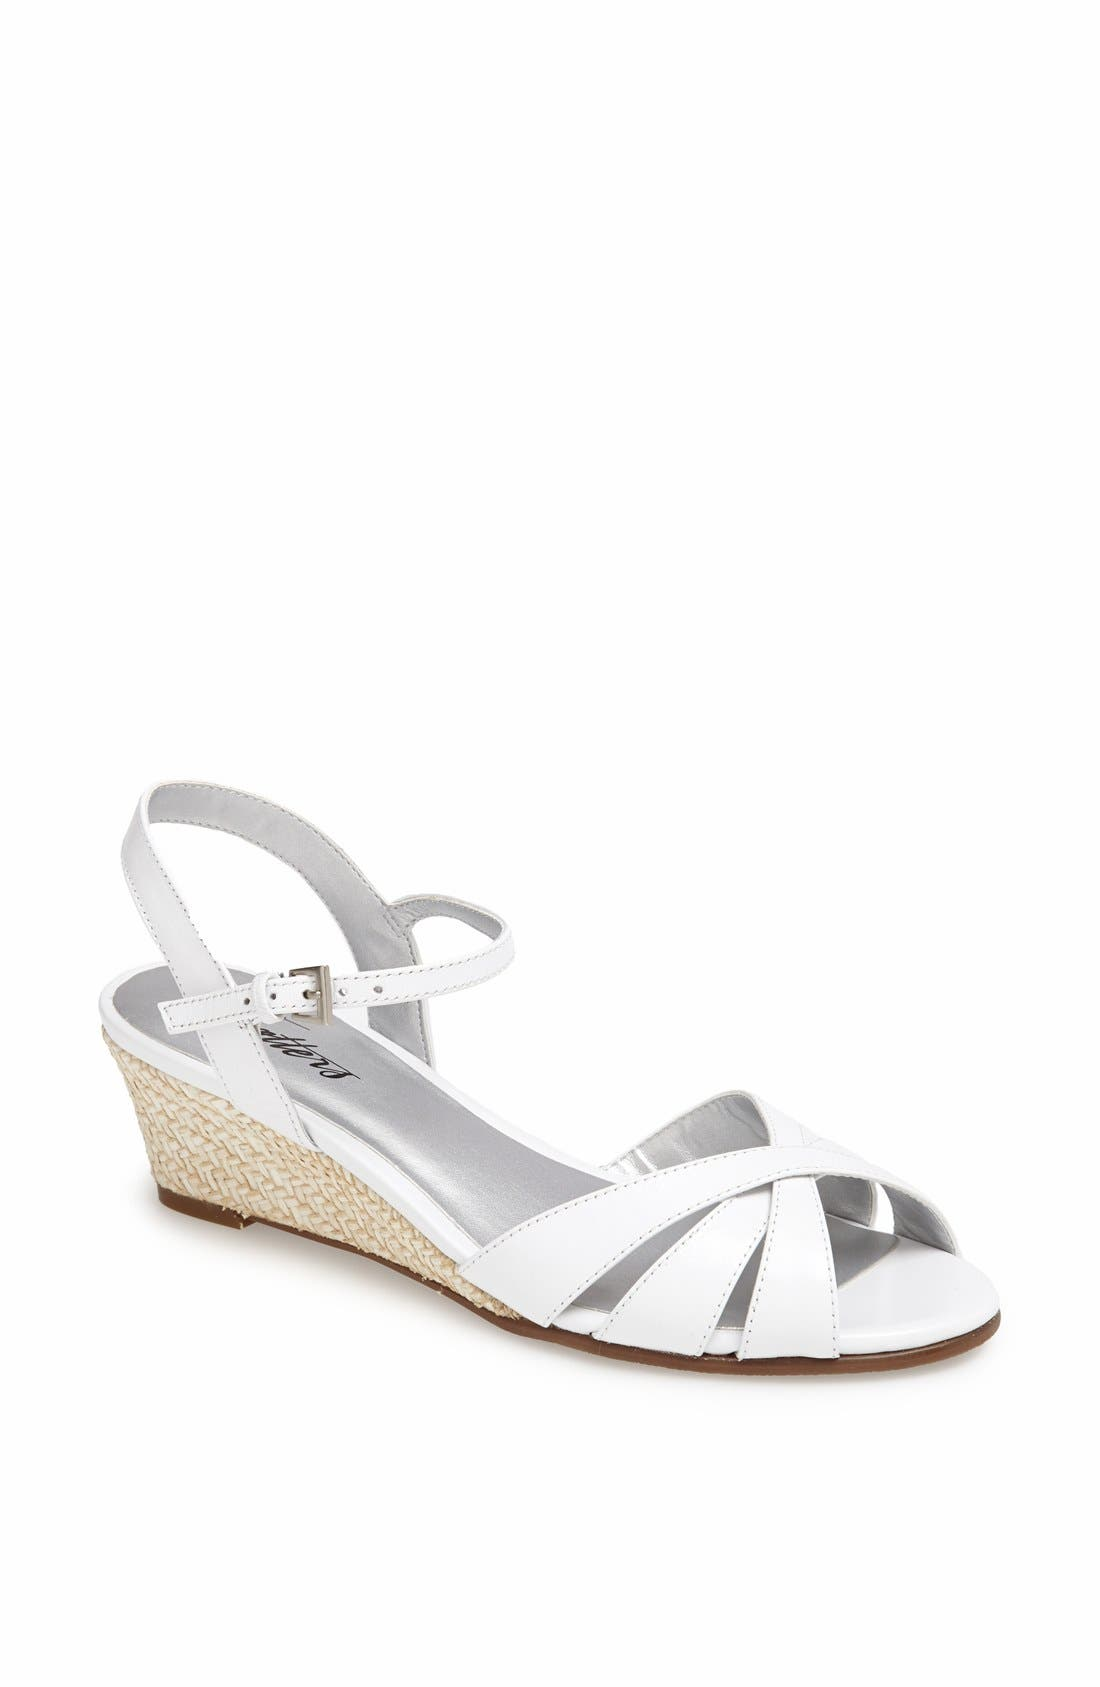 'Mickey' Wedge Sandal,                             Main thumbnail 6, color,